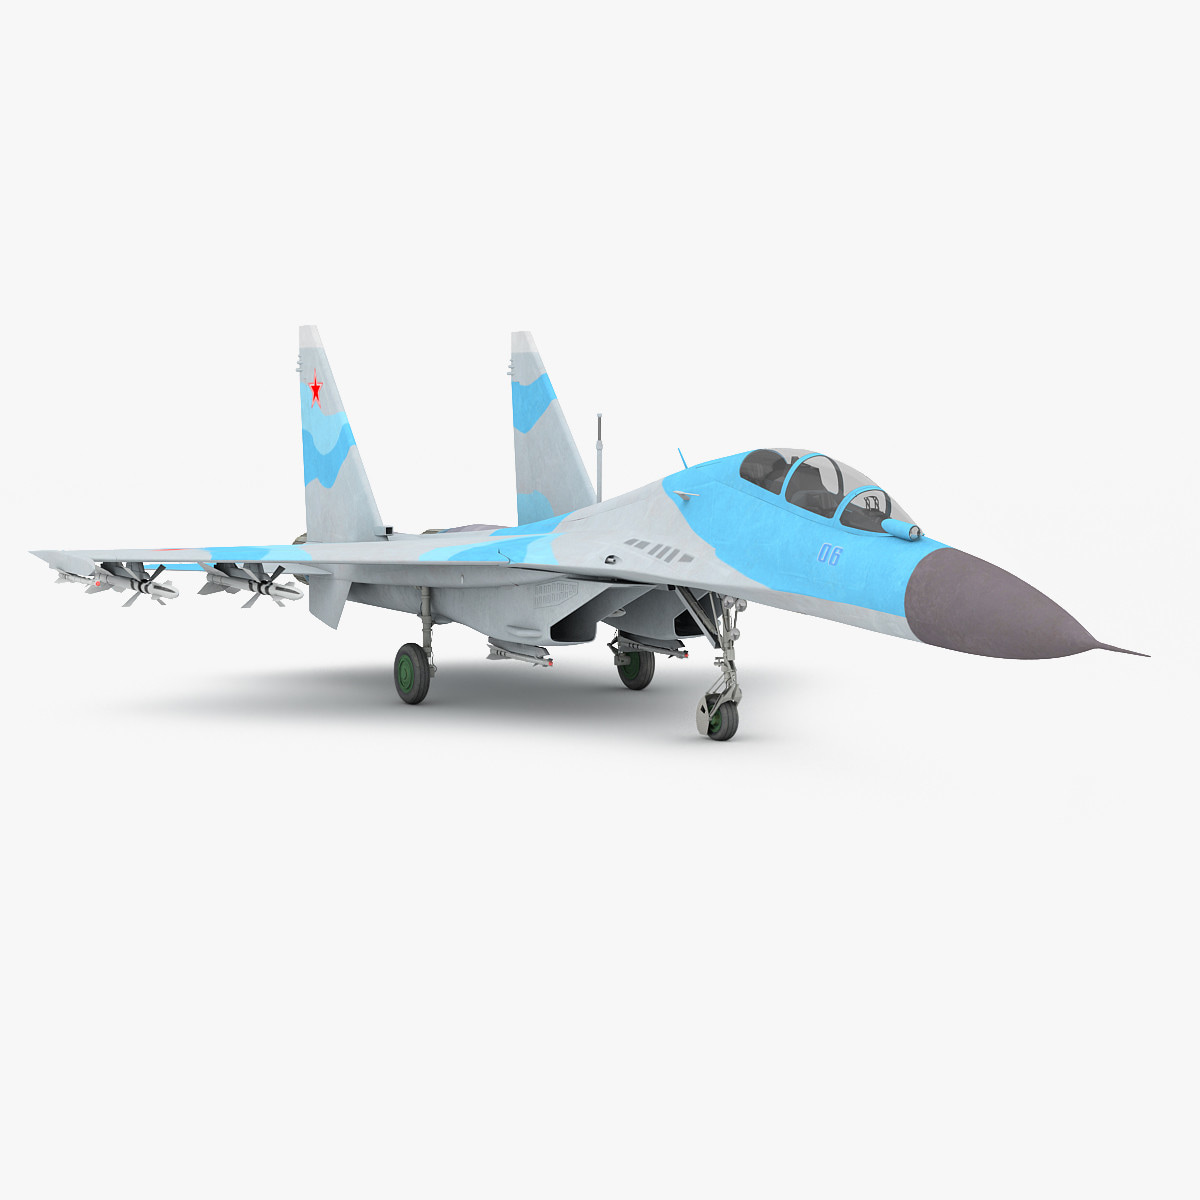 Russian_Fighter_Aircraft_Sukhoi_Su30_v1_Static_000.jpge756de31-bc5e-46d6-b909-6da83c3268e0Original.jpg